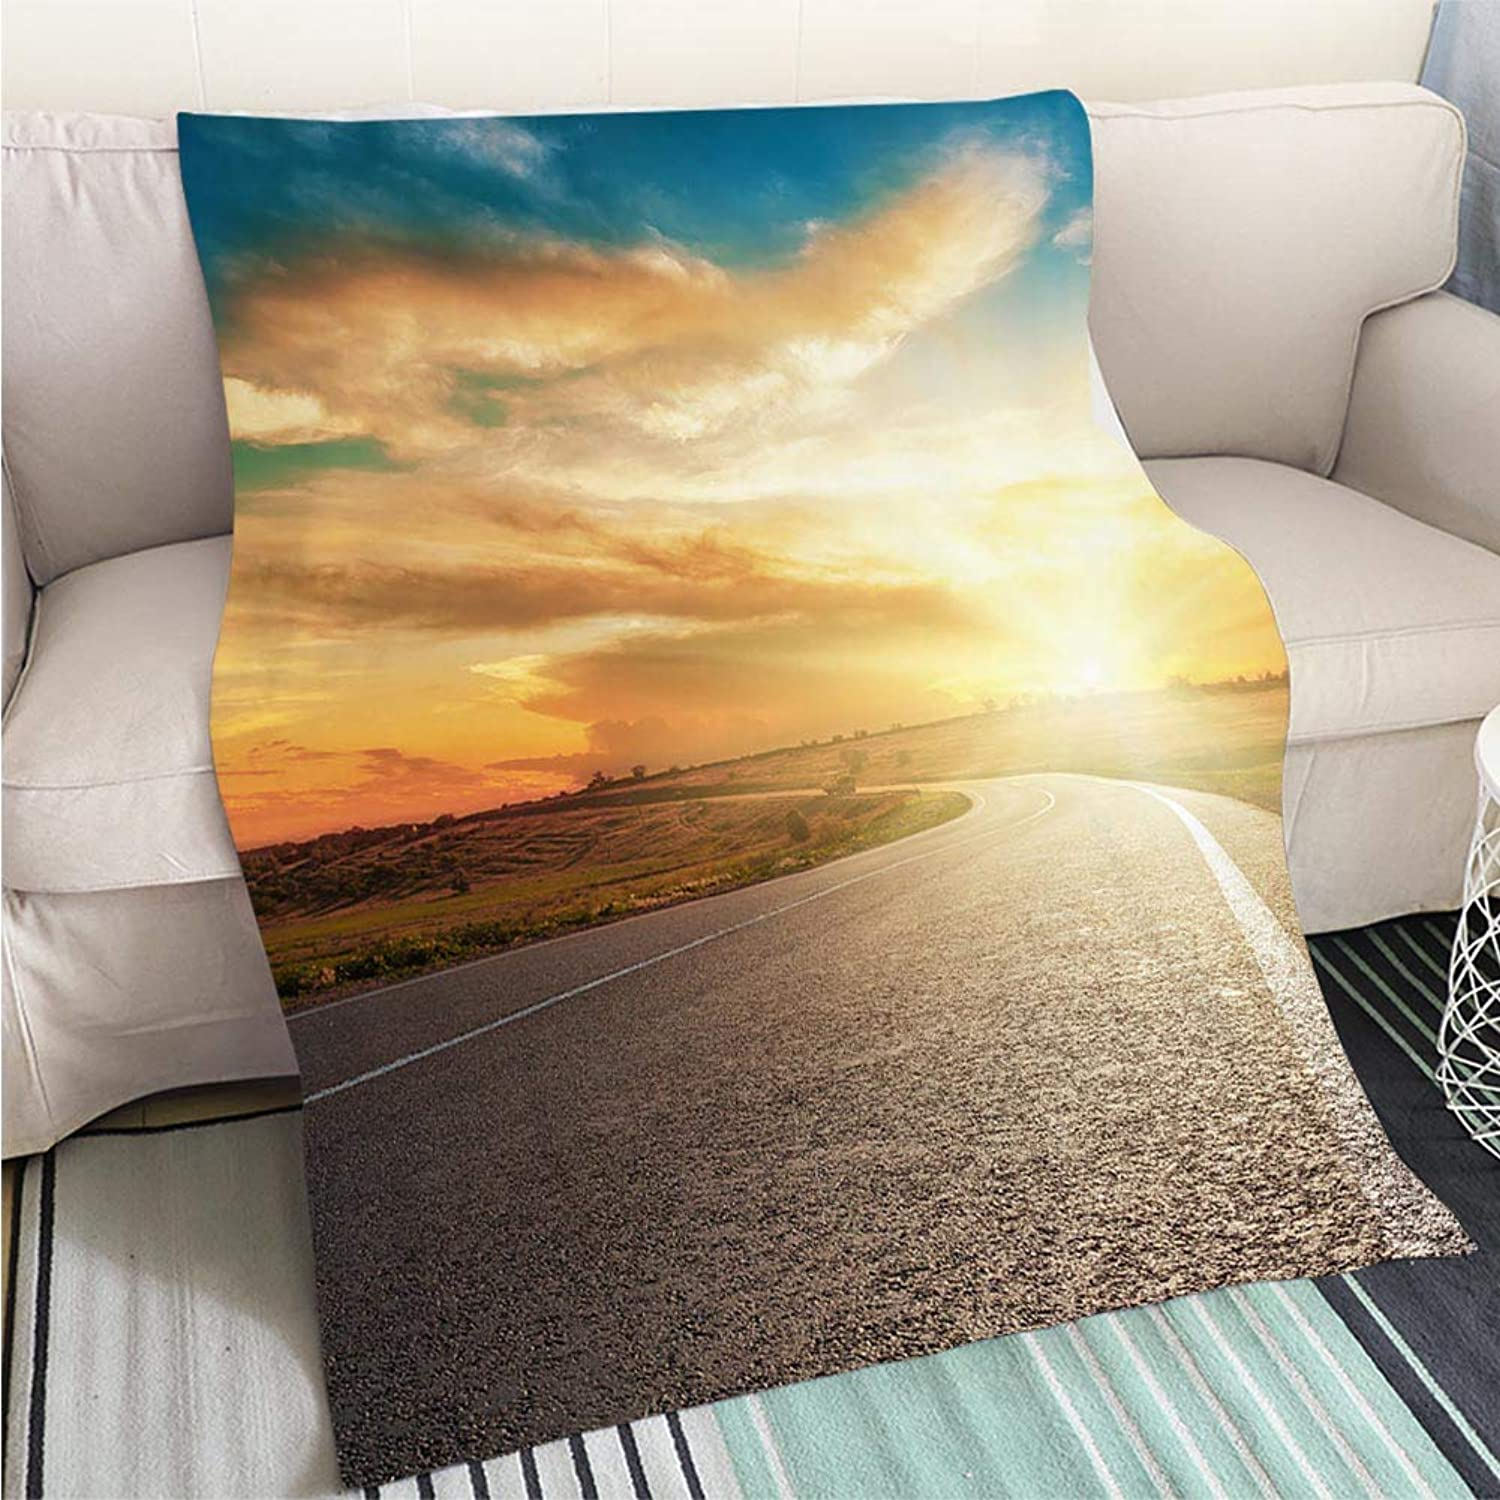 Creative Flannel Printed Blanket for Warm Bedroom Dramatic Sunset and Asphalt Road Perfect for Couch Sofa or Bed Cool Quilt